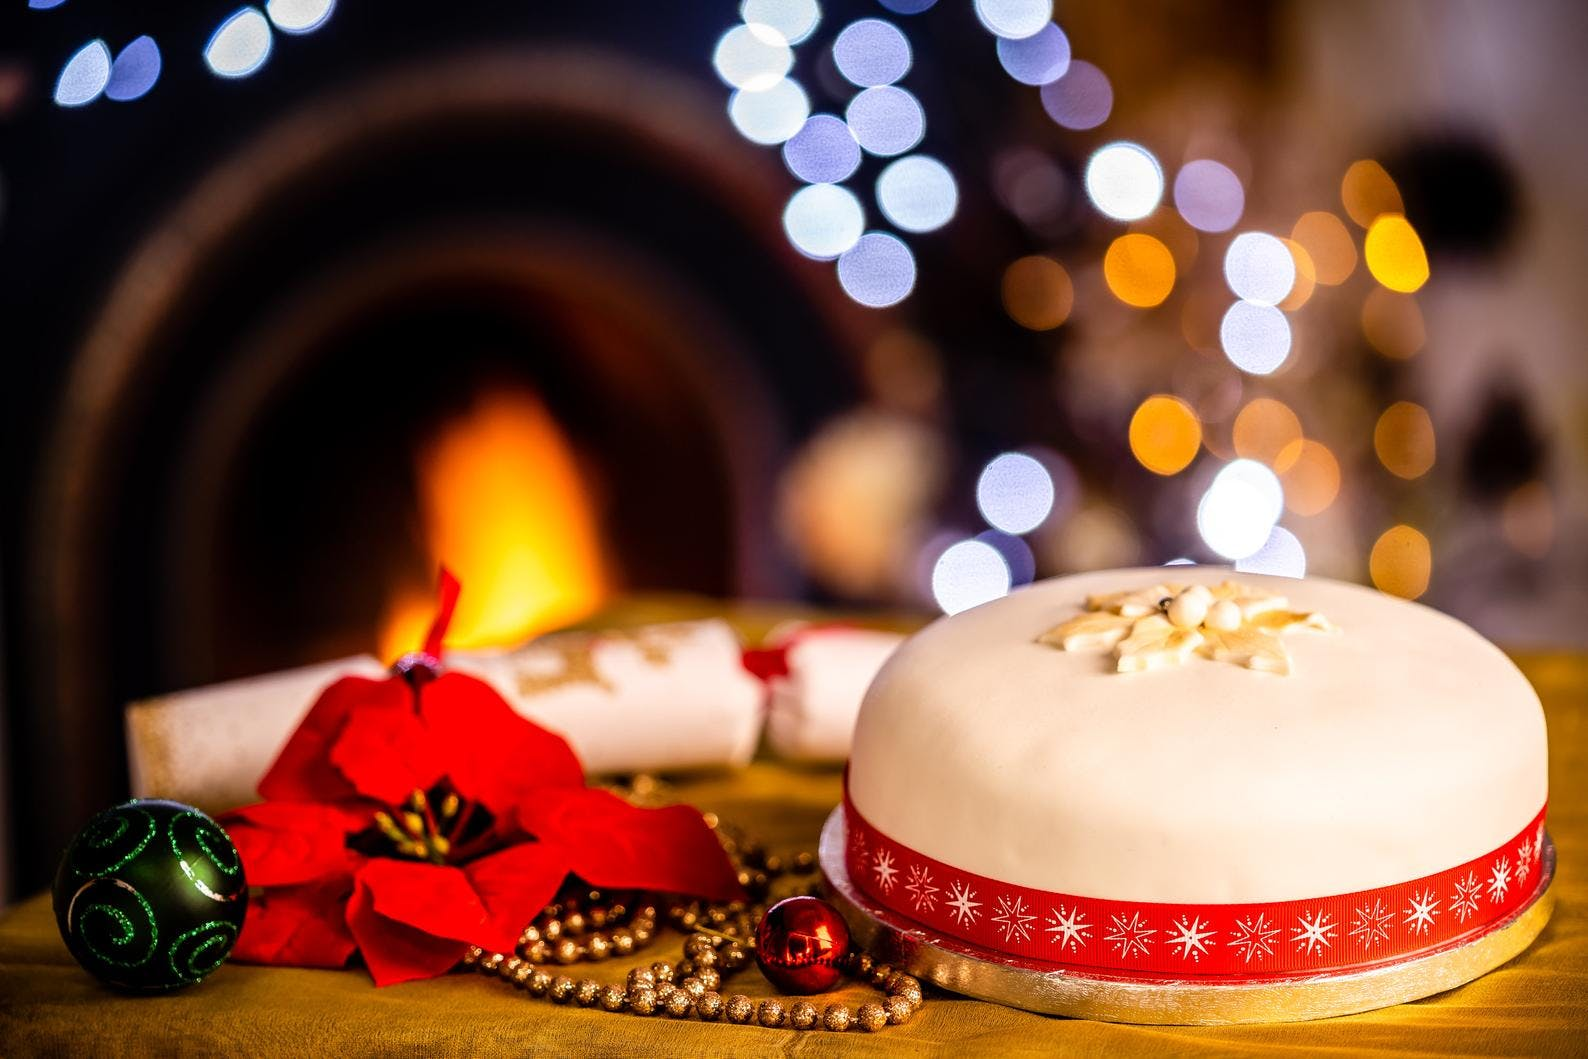 christmas cake infront of a fire